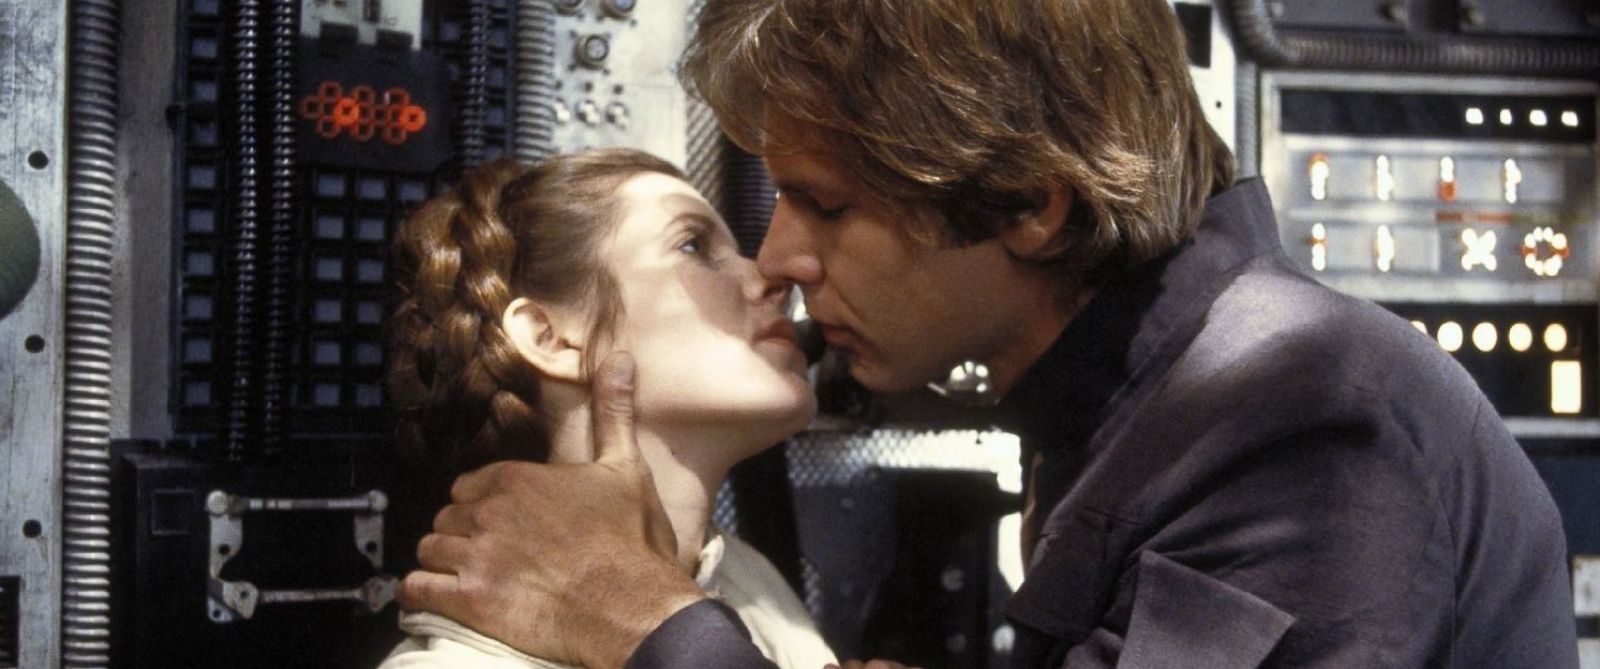 """PHOTO: Carrie Fisher and Harrison Ford in a scene from """"The Empire Strikes Back,"""" 1980."""